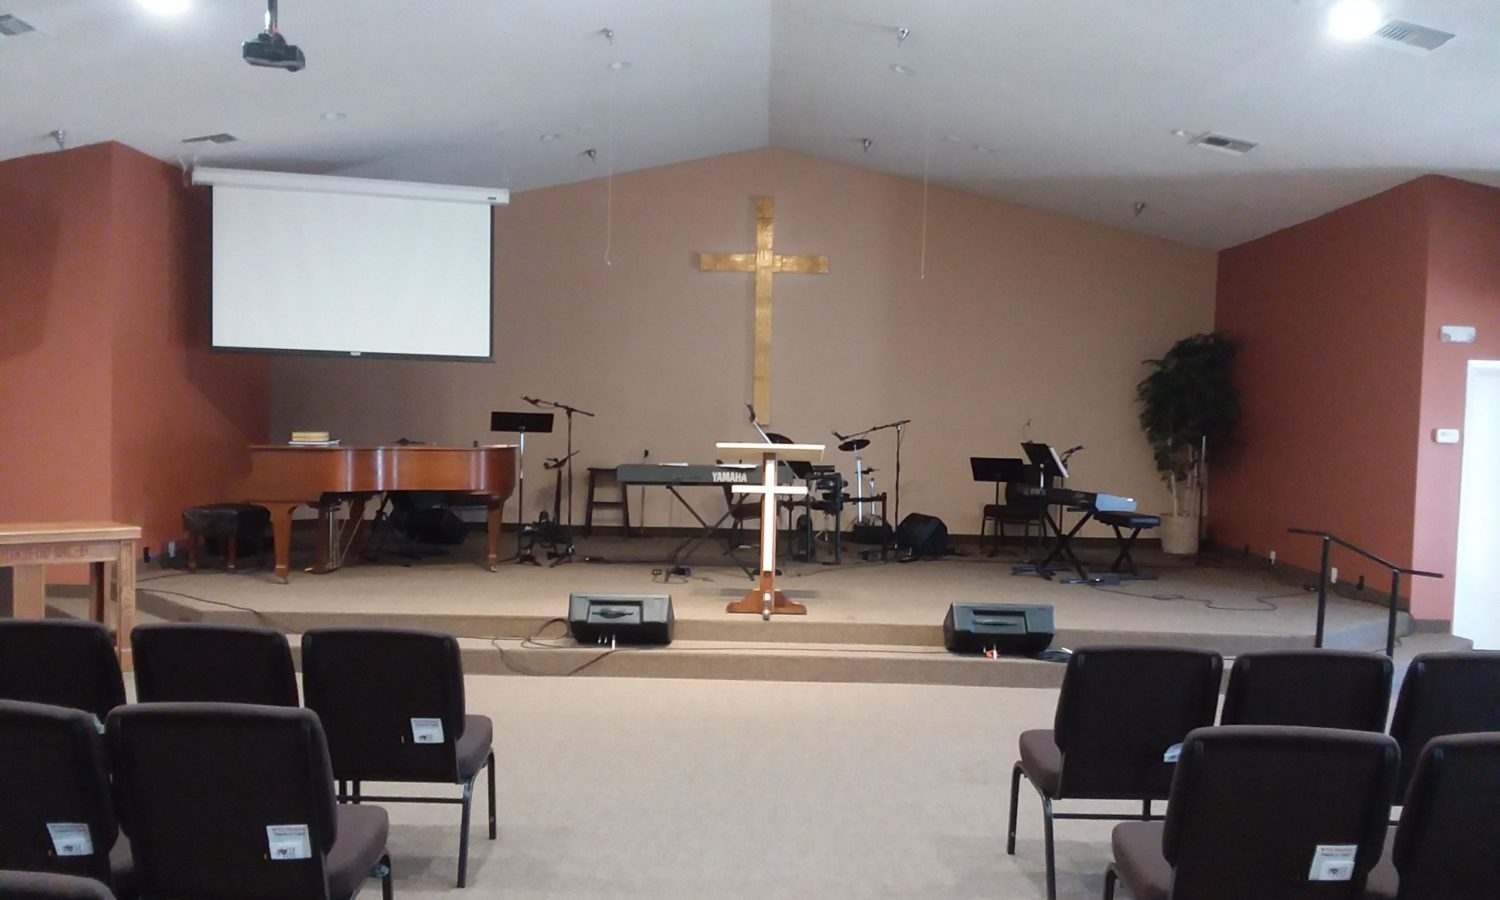 Here is our main worship area for our church campus.